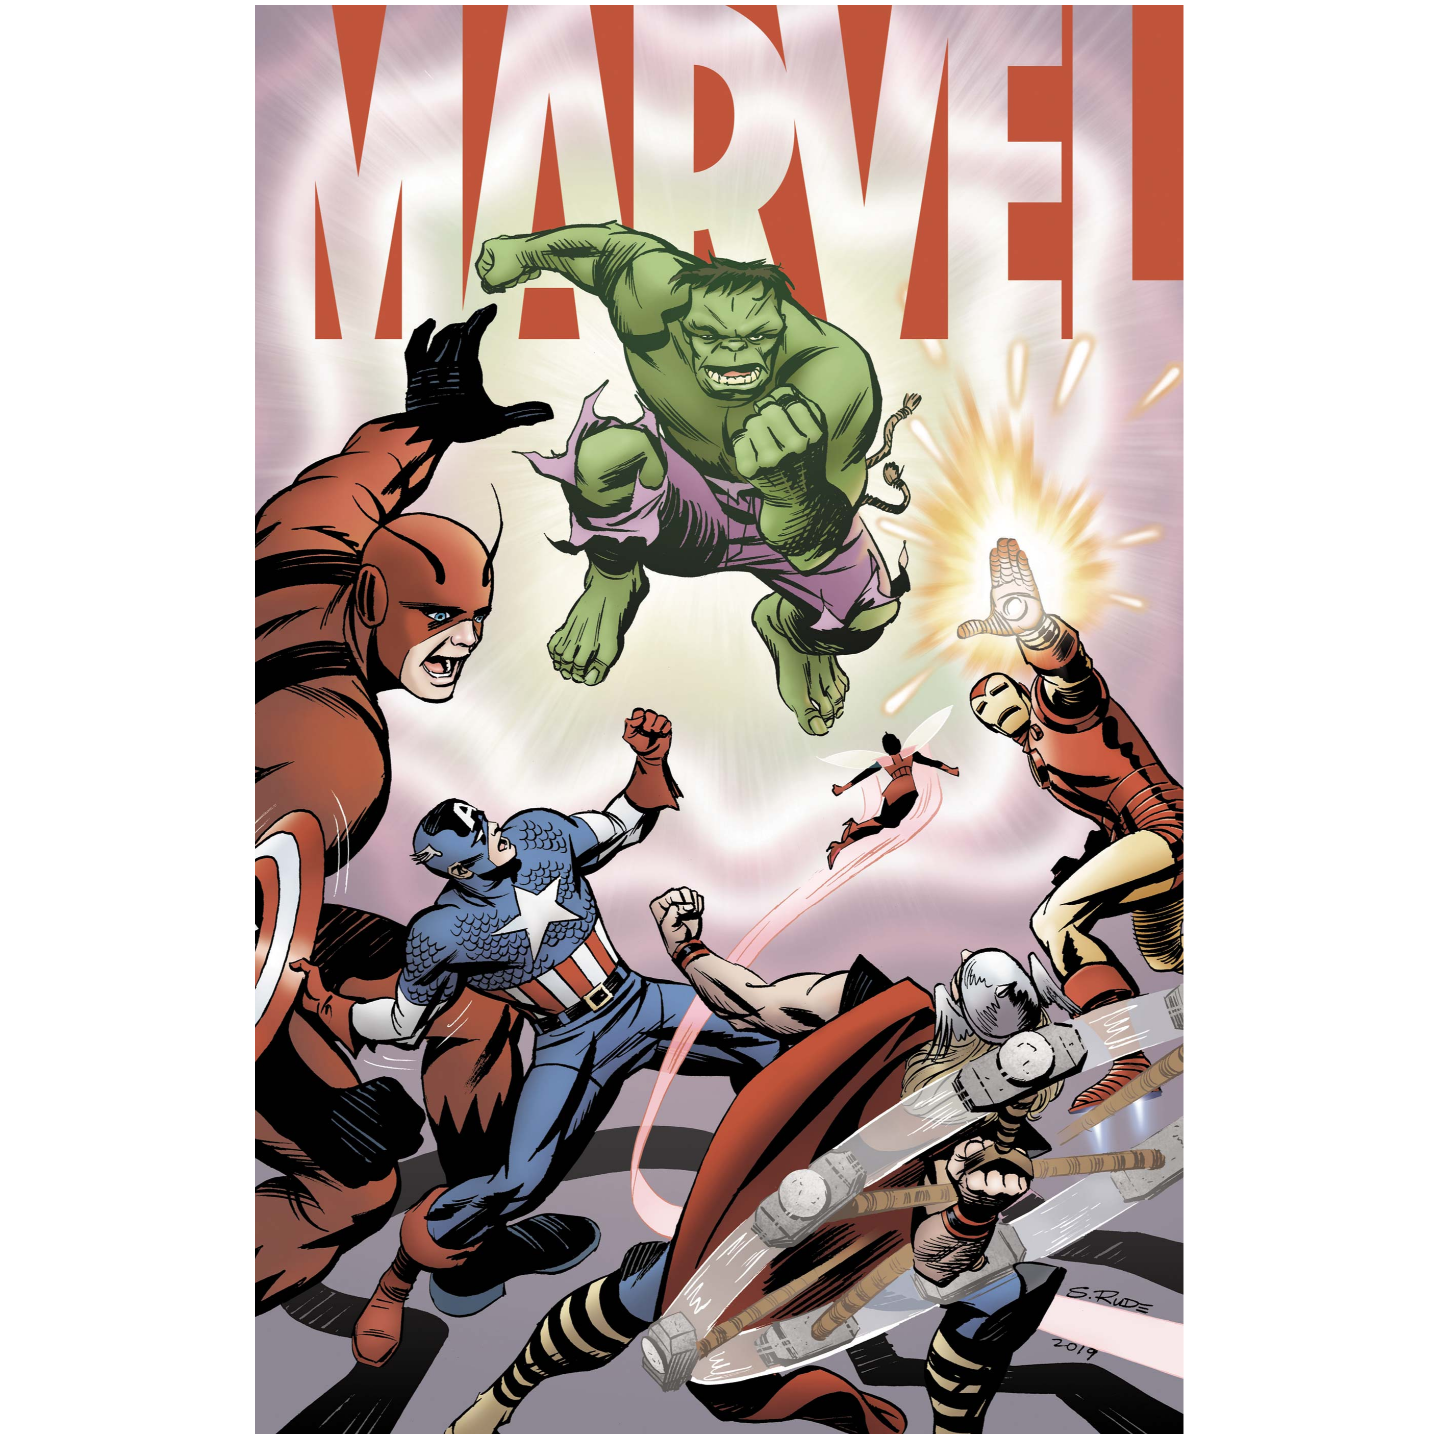 MARVEL 1 OF 6 RUDE VAR